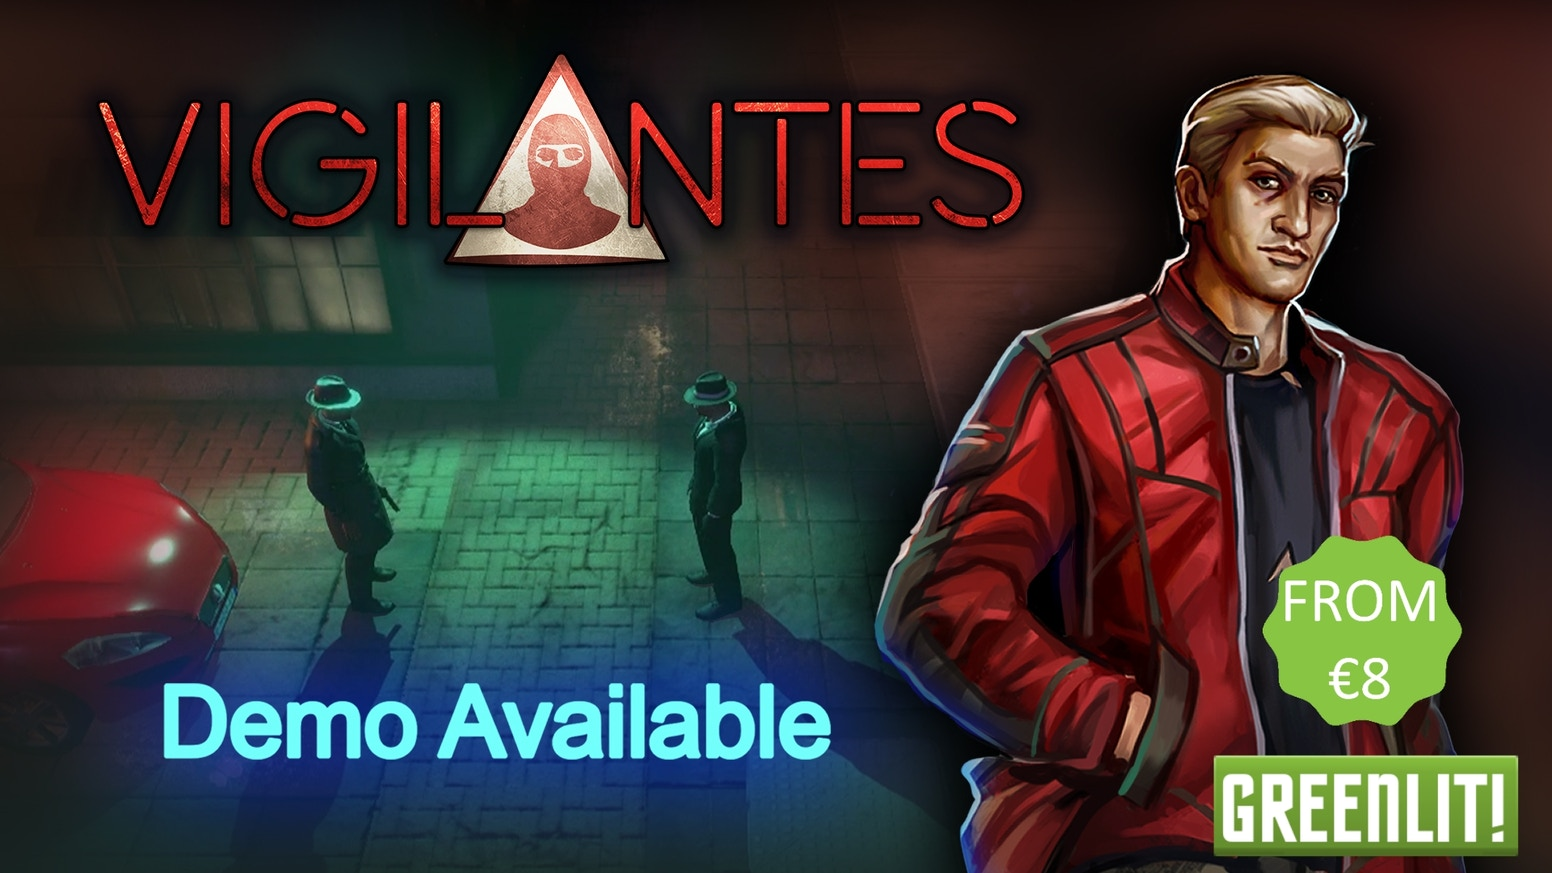 Vigilantes is a crime themed, turn based tactical RPG for PC - Windows, Mac, and Linux. Take down criminals and save Reiker City!